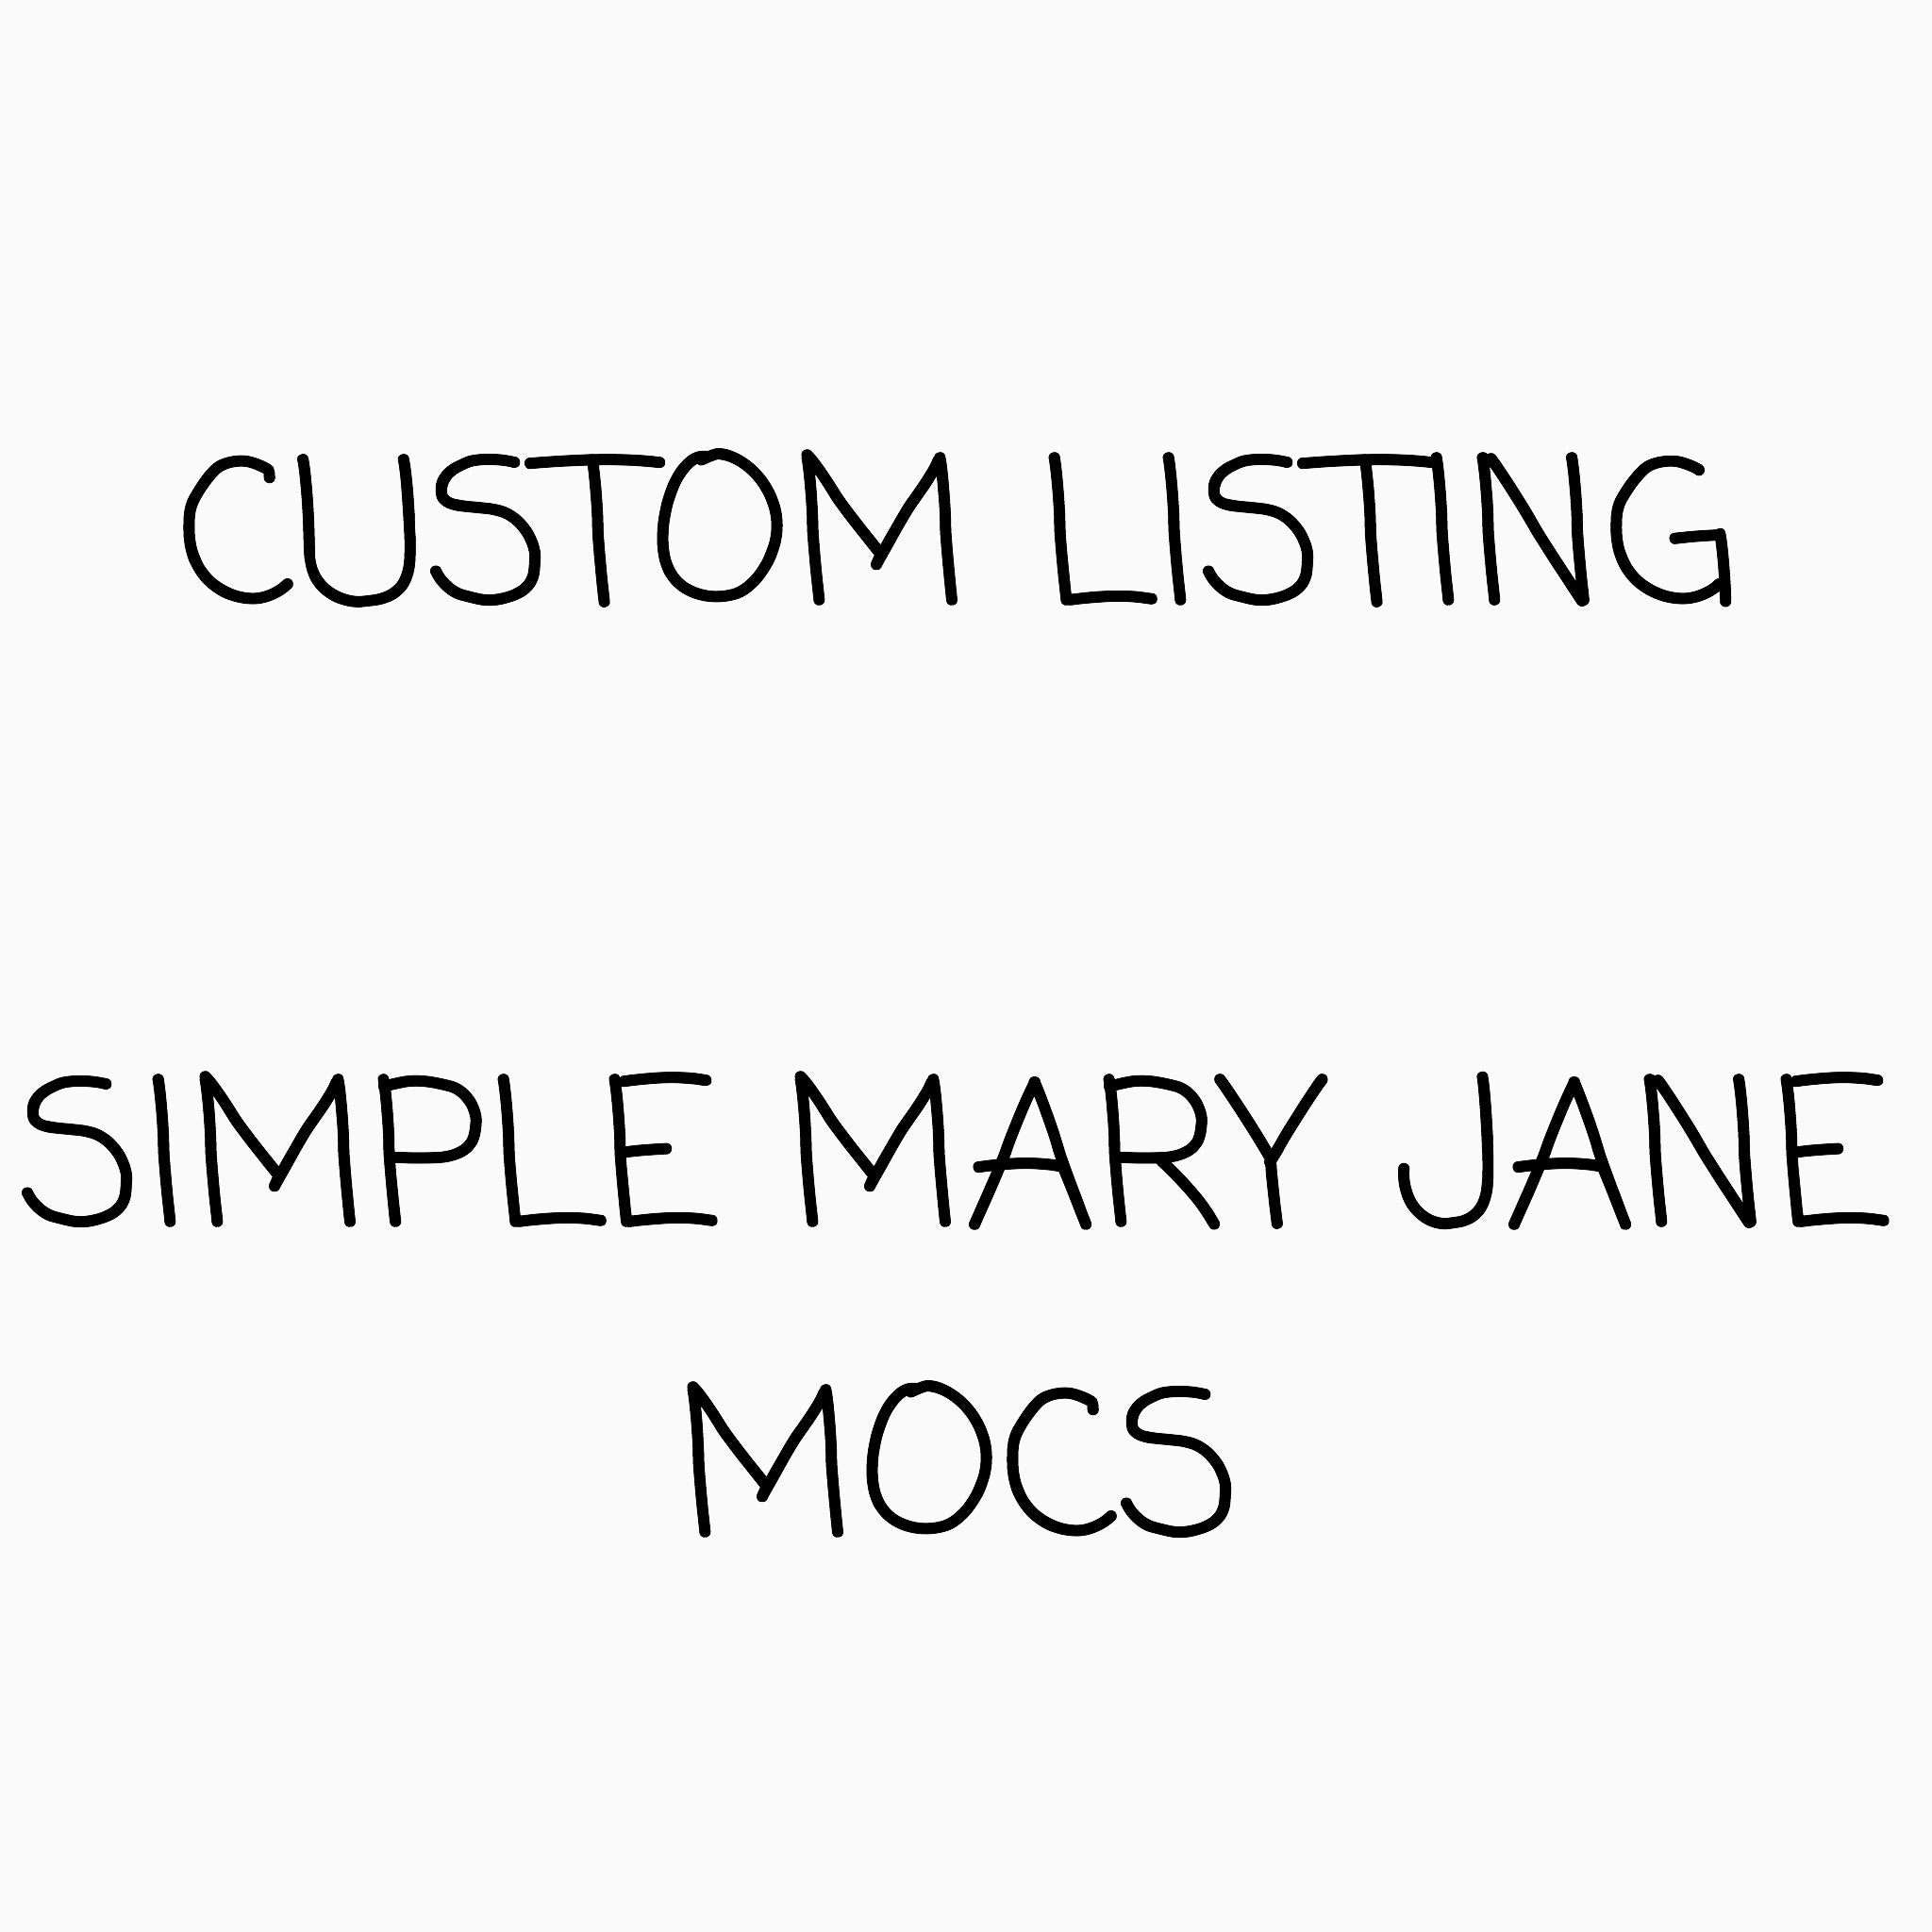 CUSTOM LISTING - Simple Mary Jane Mocs - Posh Panda